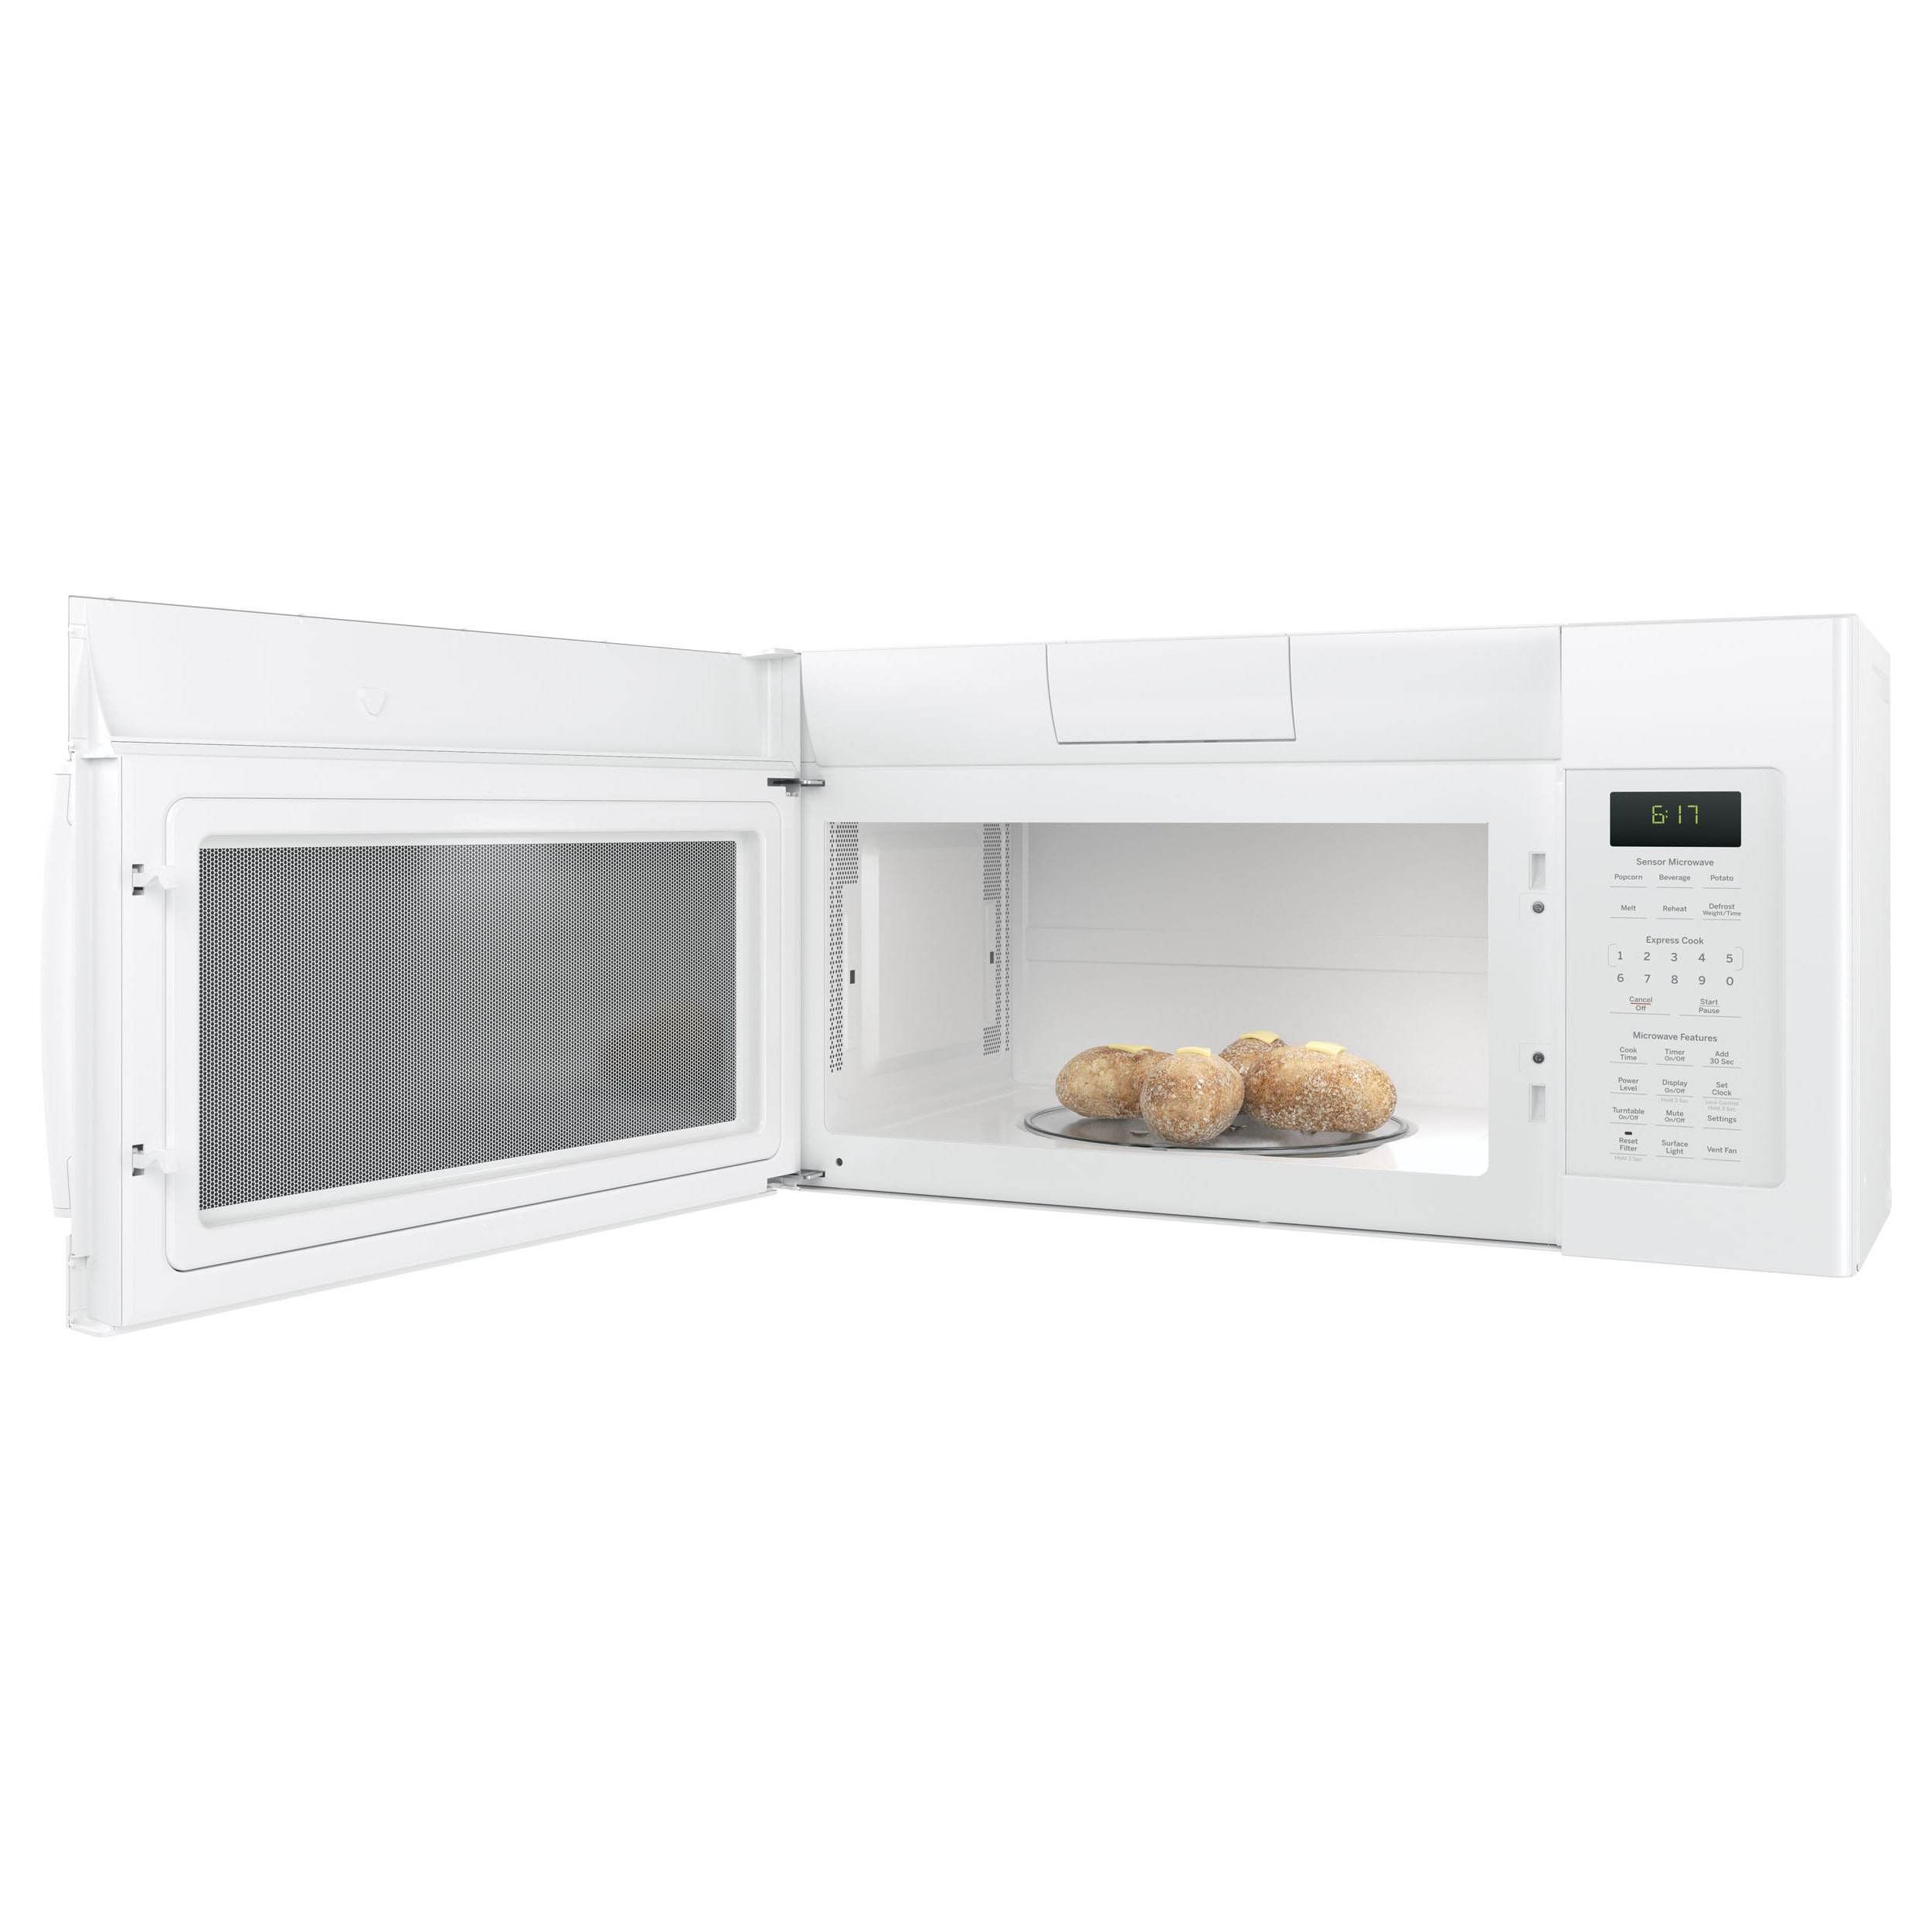 See More Hot 100 Microwaves